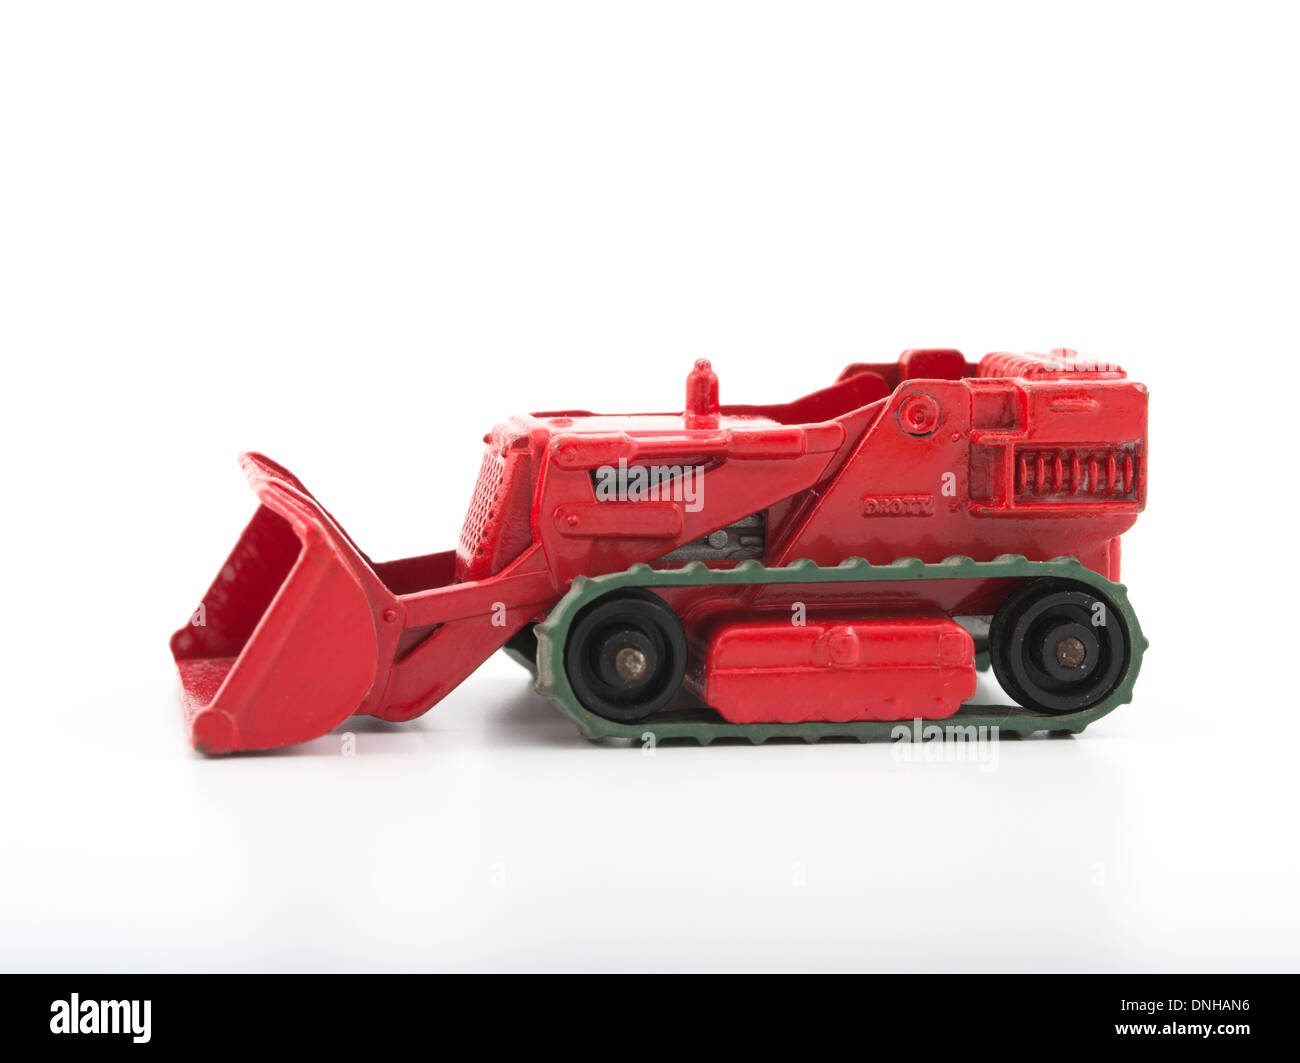 Matchbox Die-cast Toy Cars - Red Digger Produced by Lesney Products United Kingdom from 1953 onwards. - Stock Image